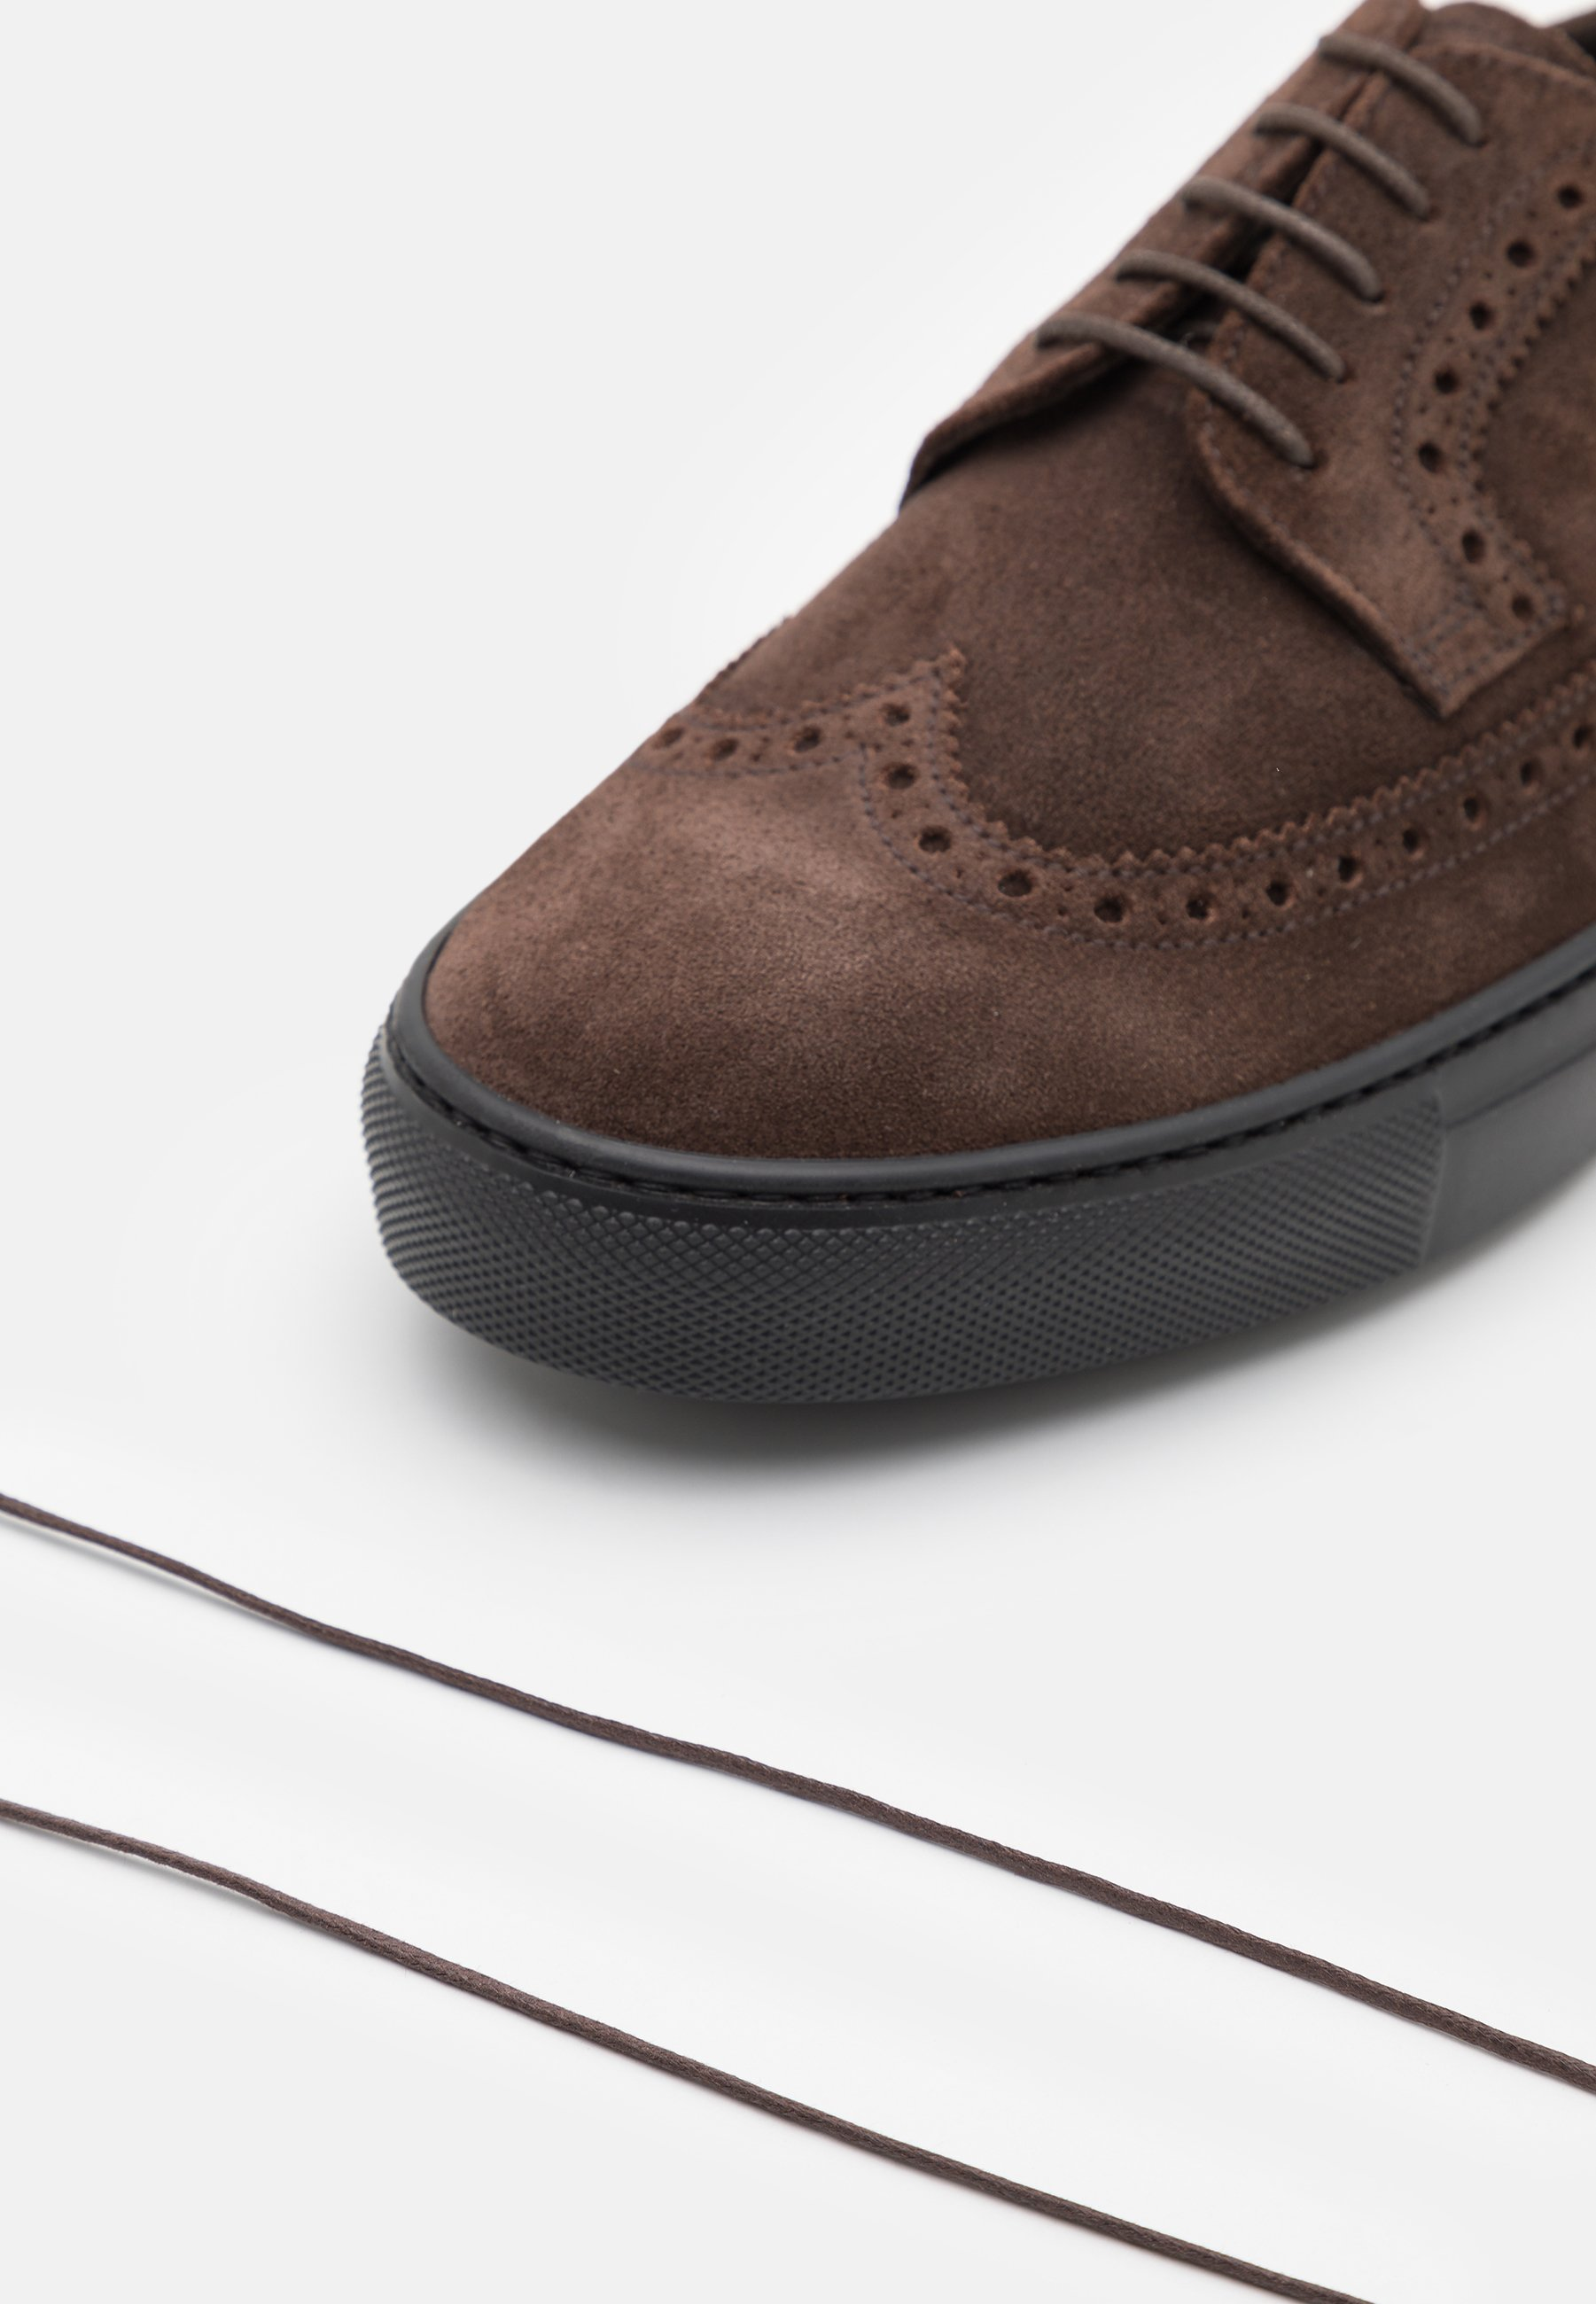 Homme CALZ.ONE UOMO SCATOLATO LIGHT - Chaussures à lacets